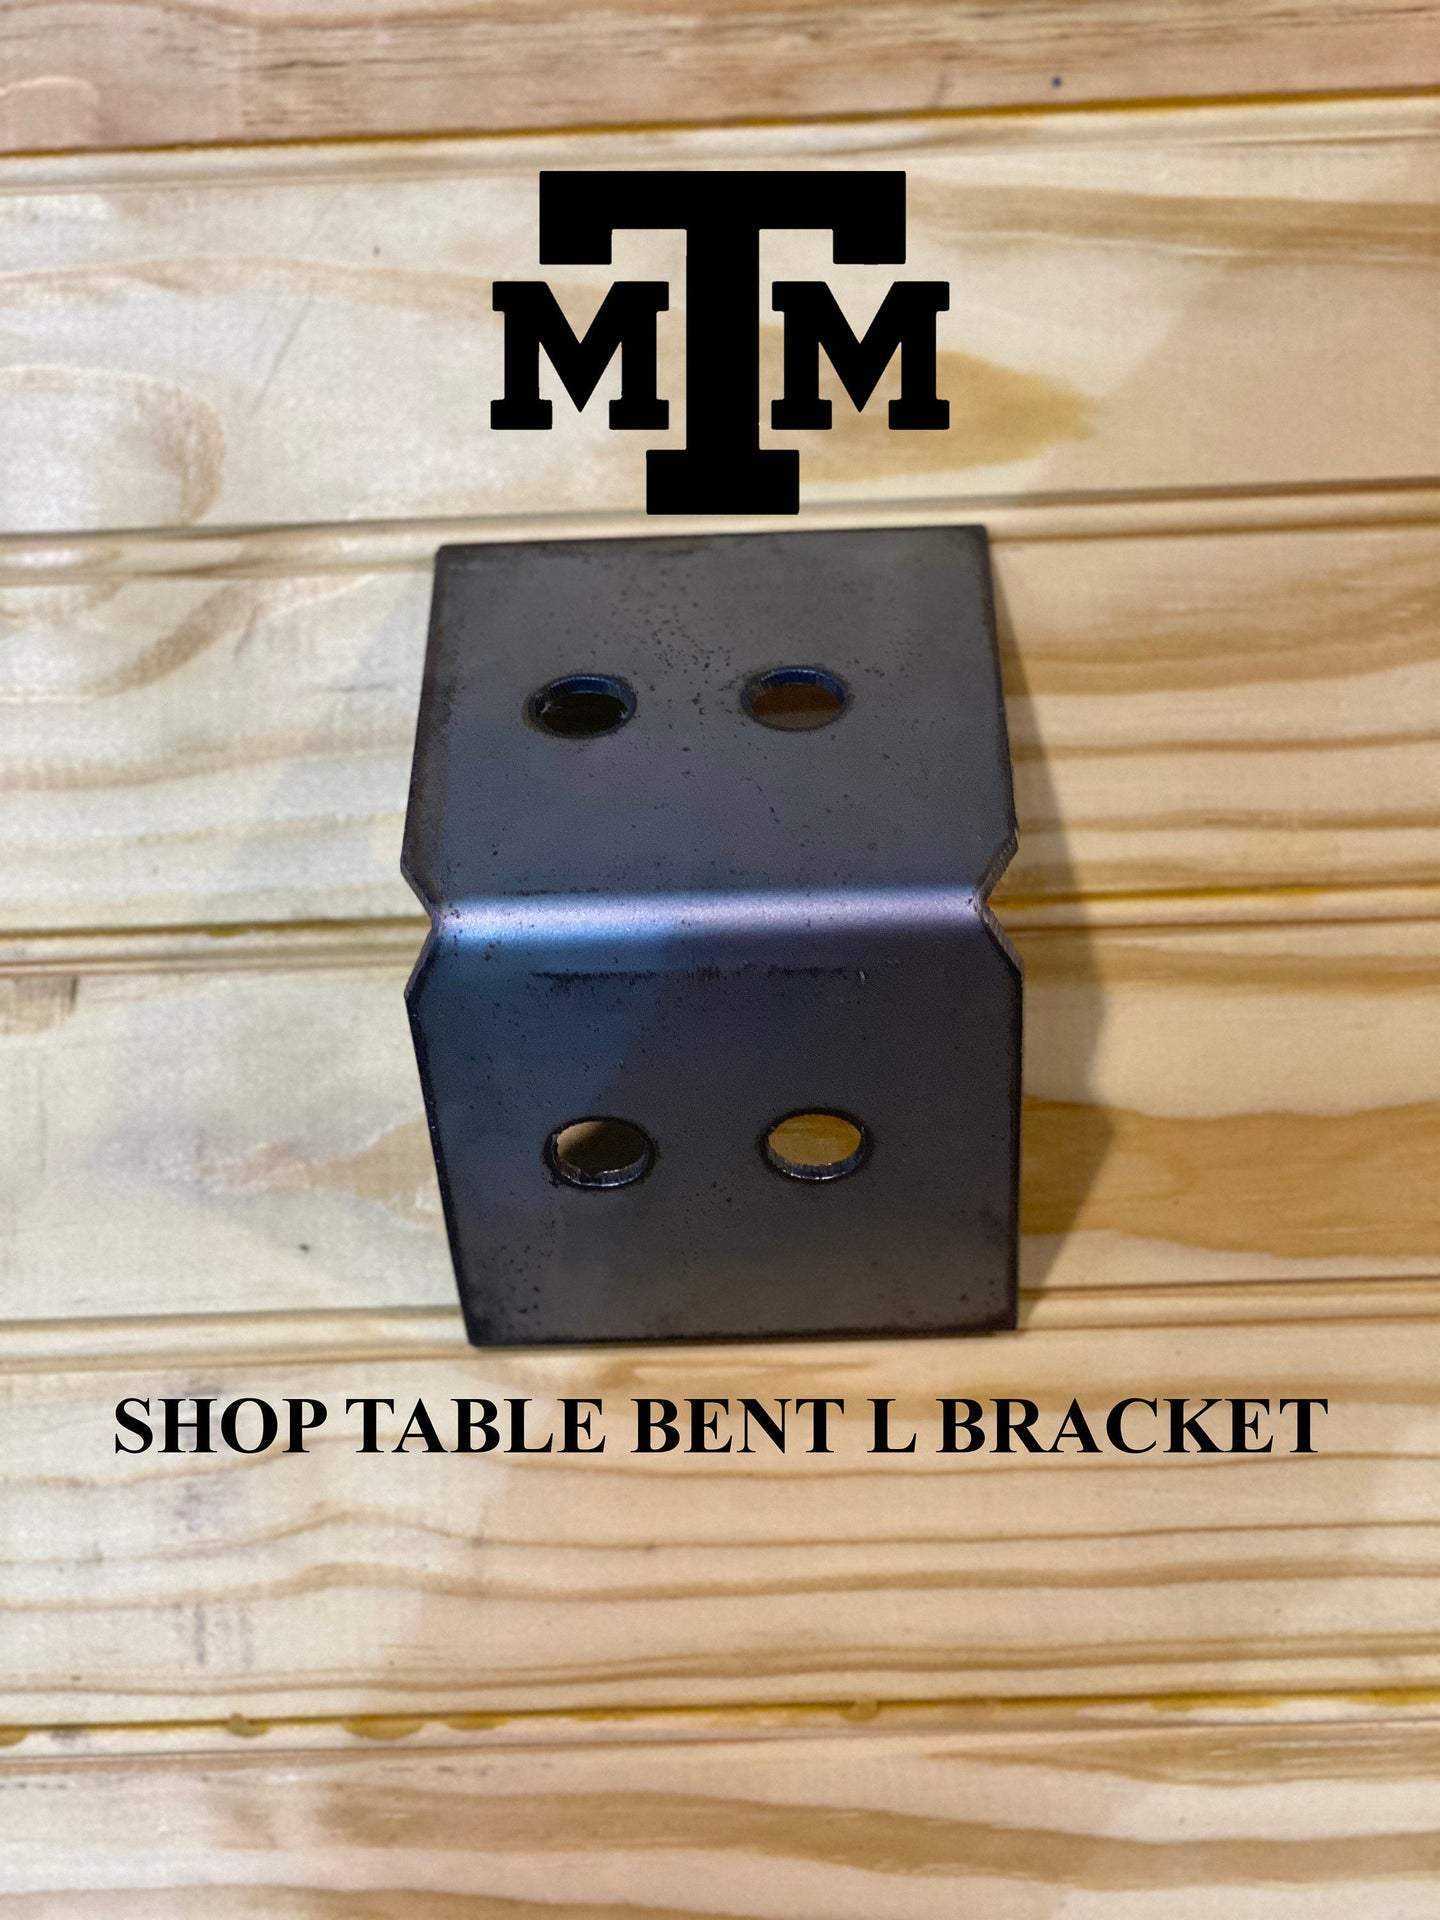 Shop Table DIY | Workbench Heavy Duty 6x6 Bent L Brackets for 6 x 6 Posts | Made In the USA!